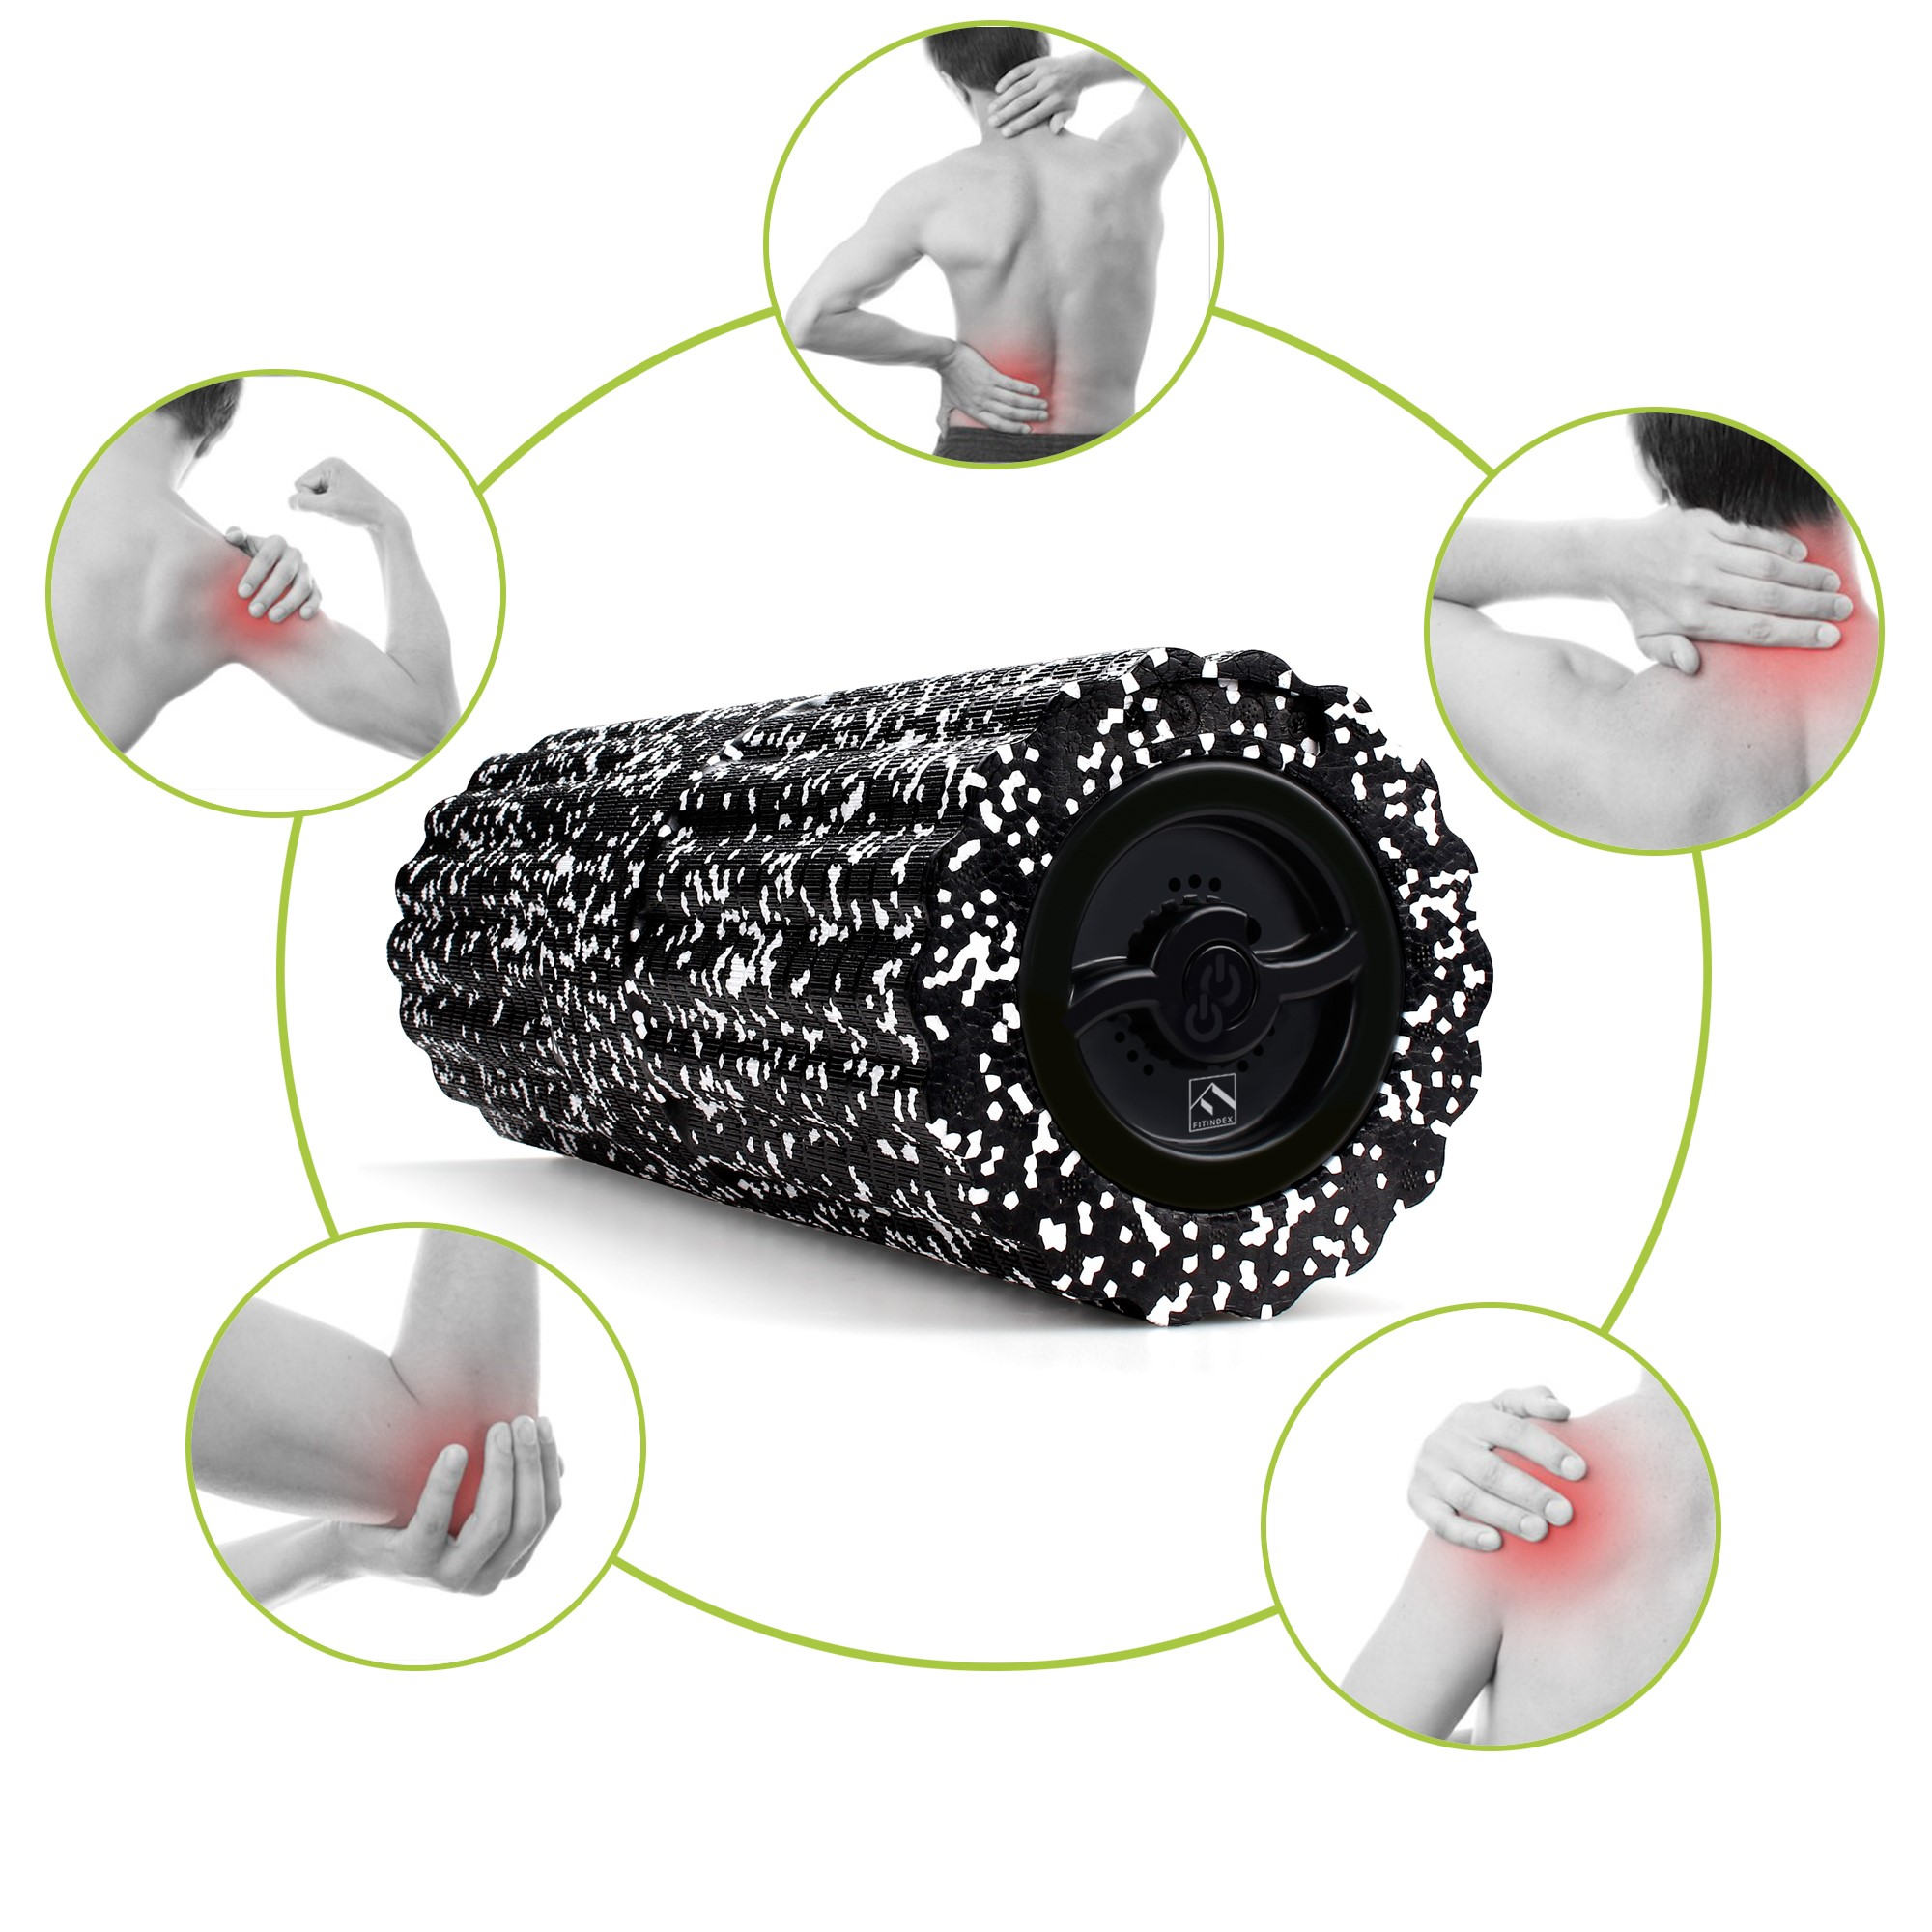 Healthcare Companion - Vibration Foam Roller is your healthcare companion, which can help you relax and heal soreness, promote better circulation, keep muscles loose and flexible, increase pliability and keep away from muscle soreness.